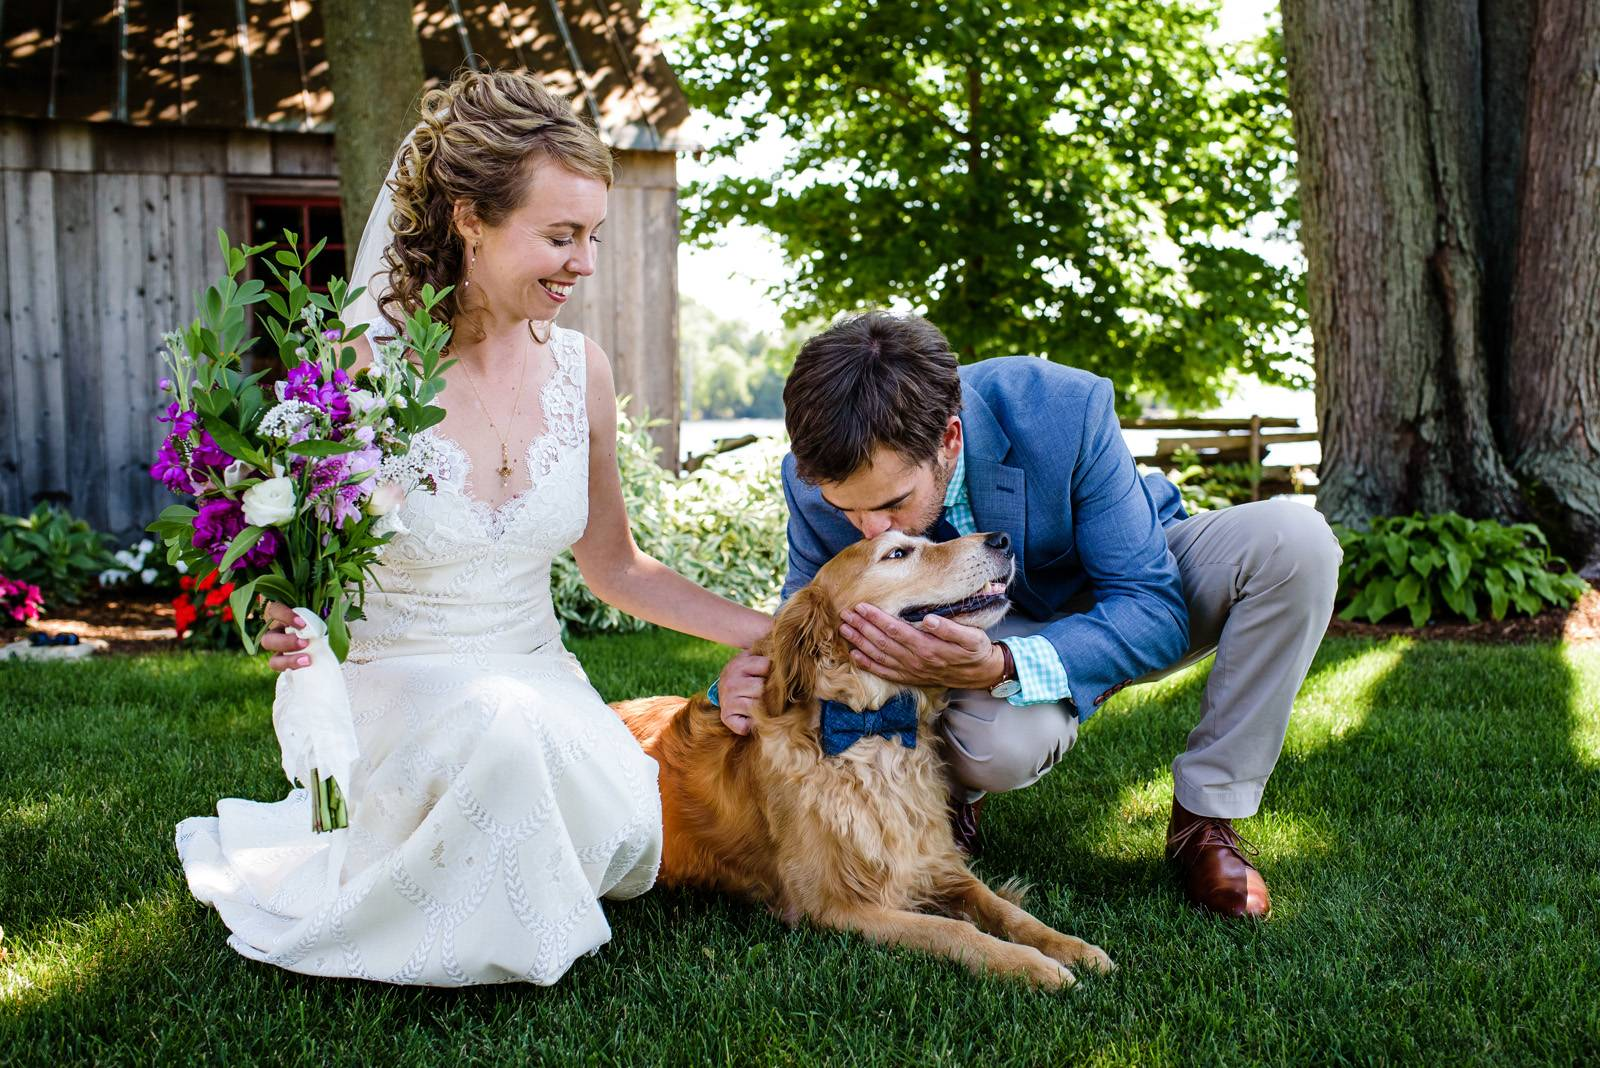 Couple posing with golden retriever dog wearing bow tie on wedding day